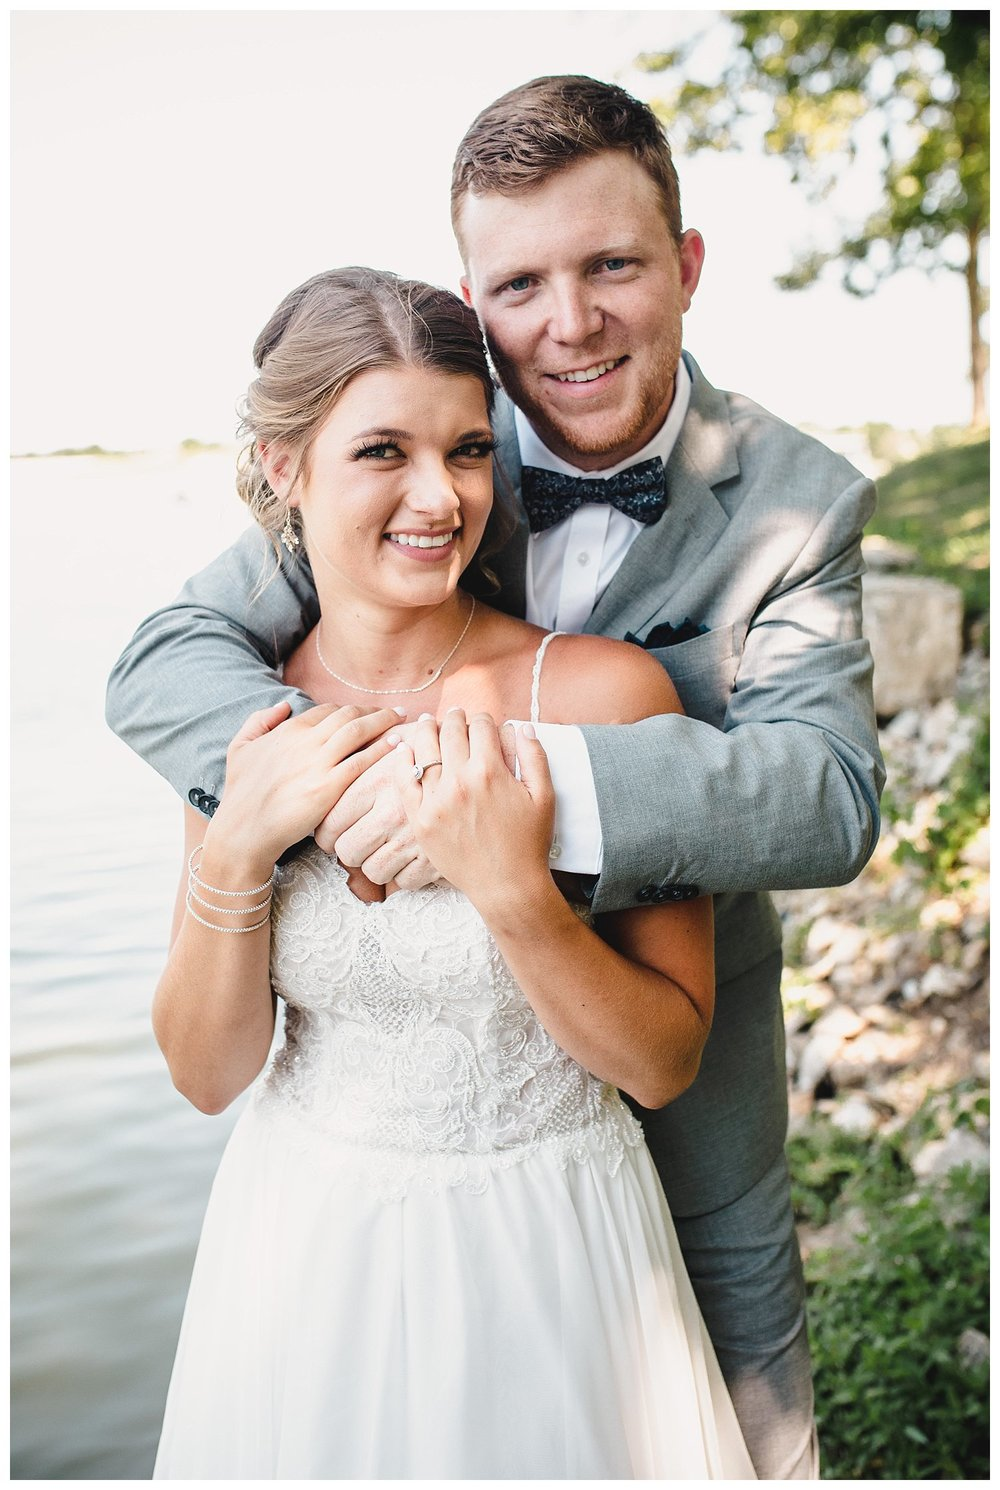 Kelsey_Diane_Photography_Kansas_City_Engagement_Wedding_Photographer_Midwest_Traveling_Missouri_Lee_Andrew_Hall_And_Garden_Blue_Springs_Wedding_Clayton_Kimberly_Summer_Wedding_0824.jpg